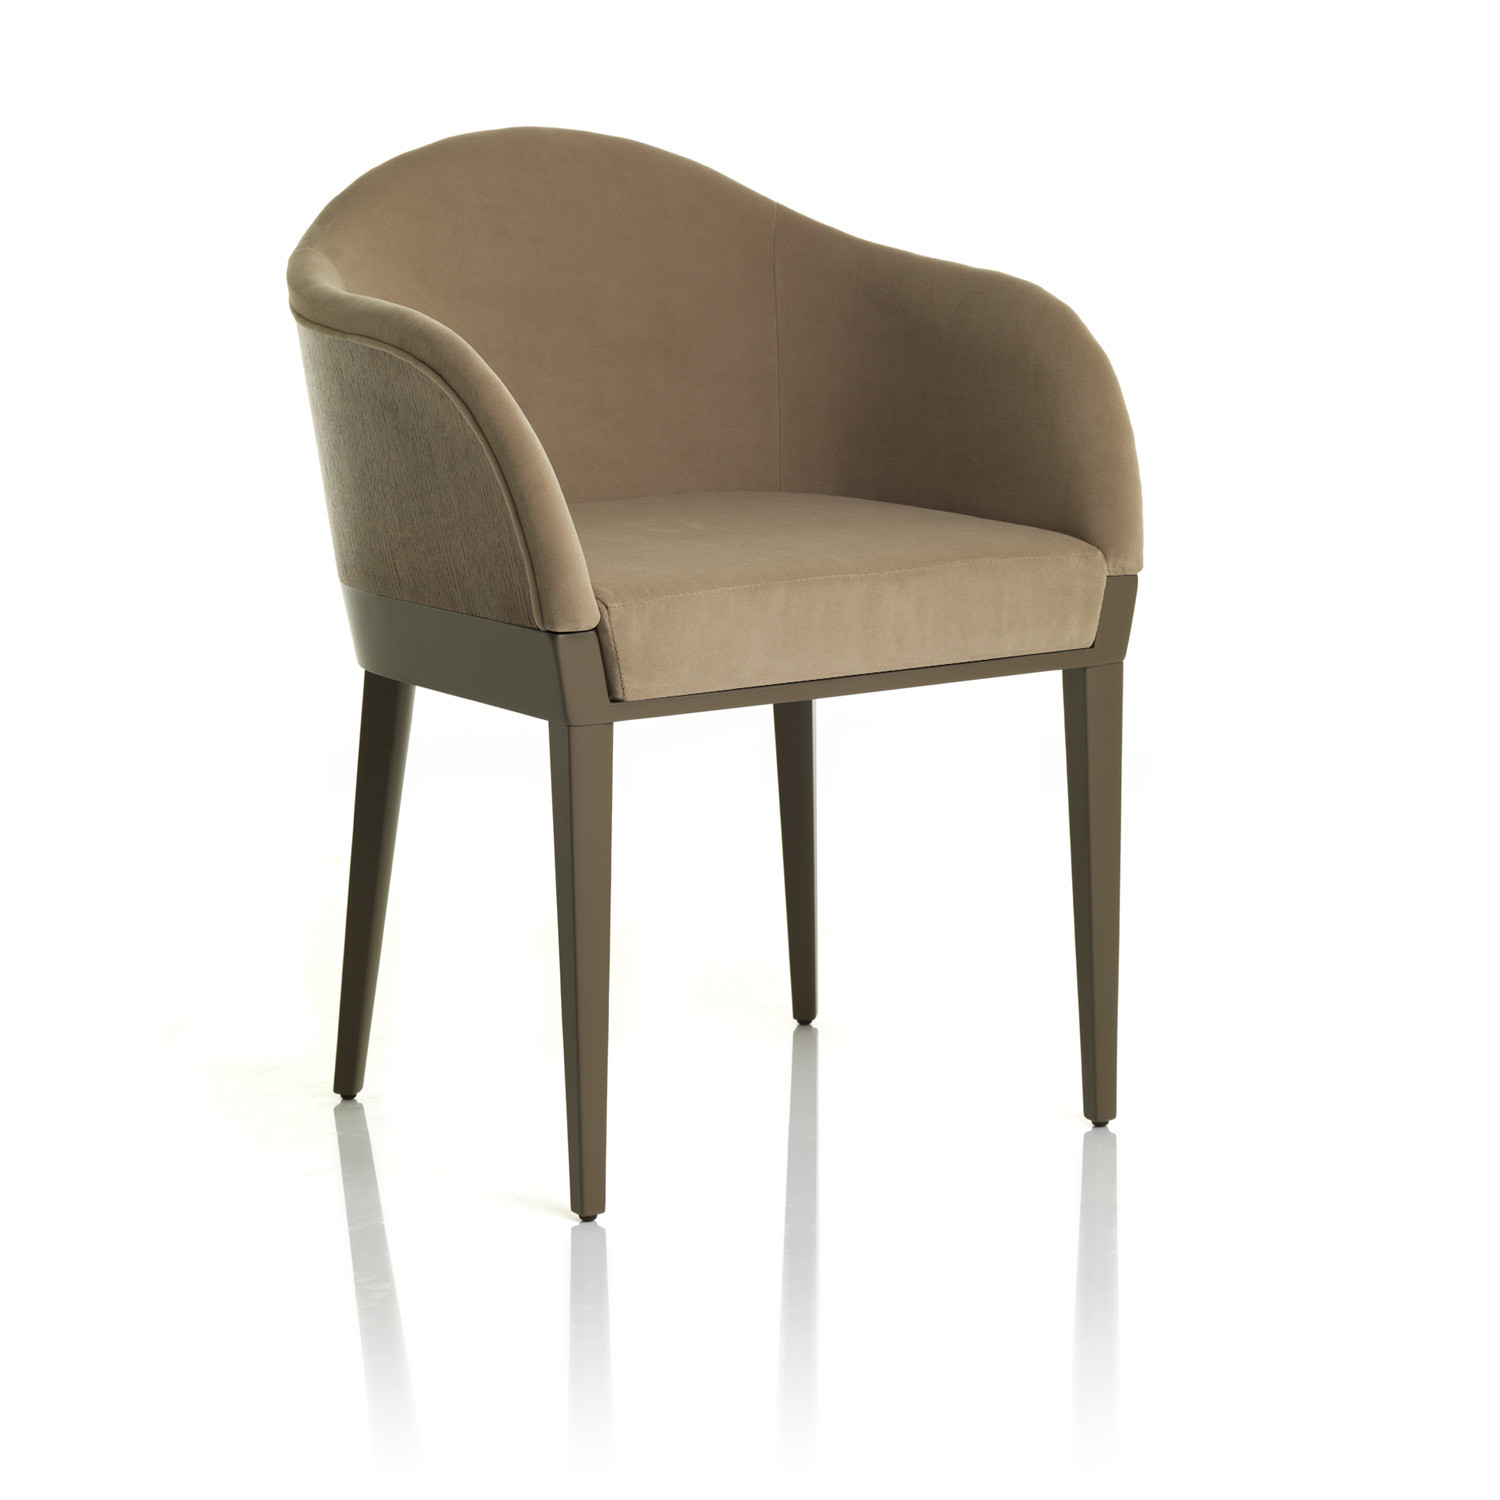 Agata Armchair by Apres